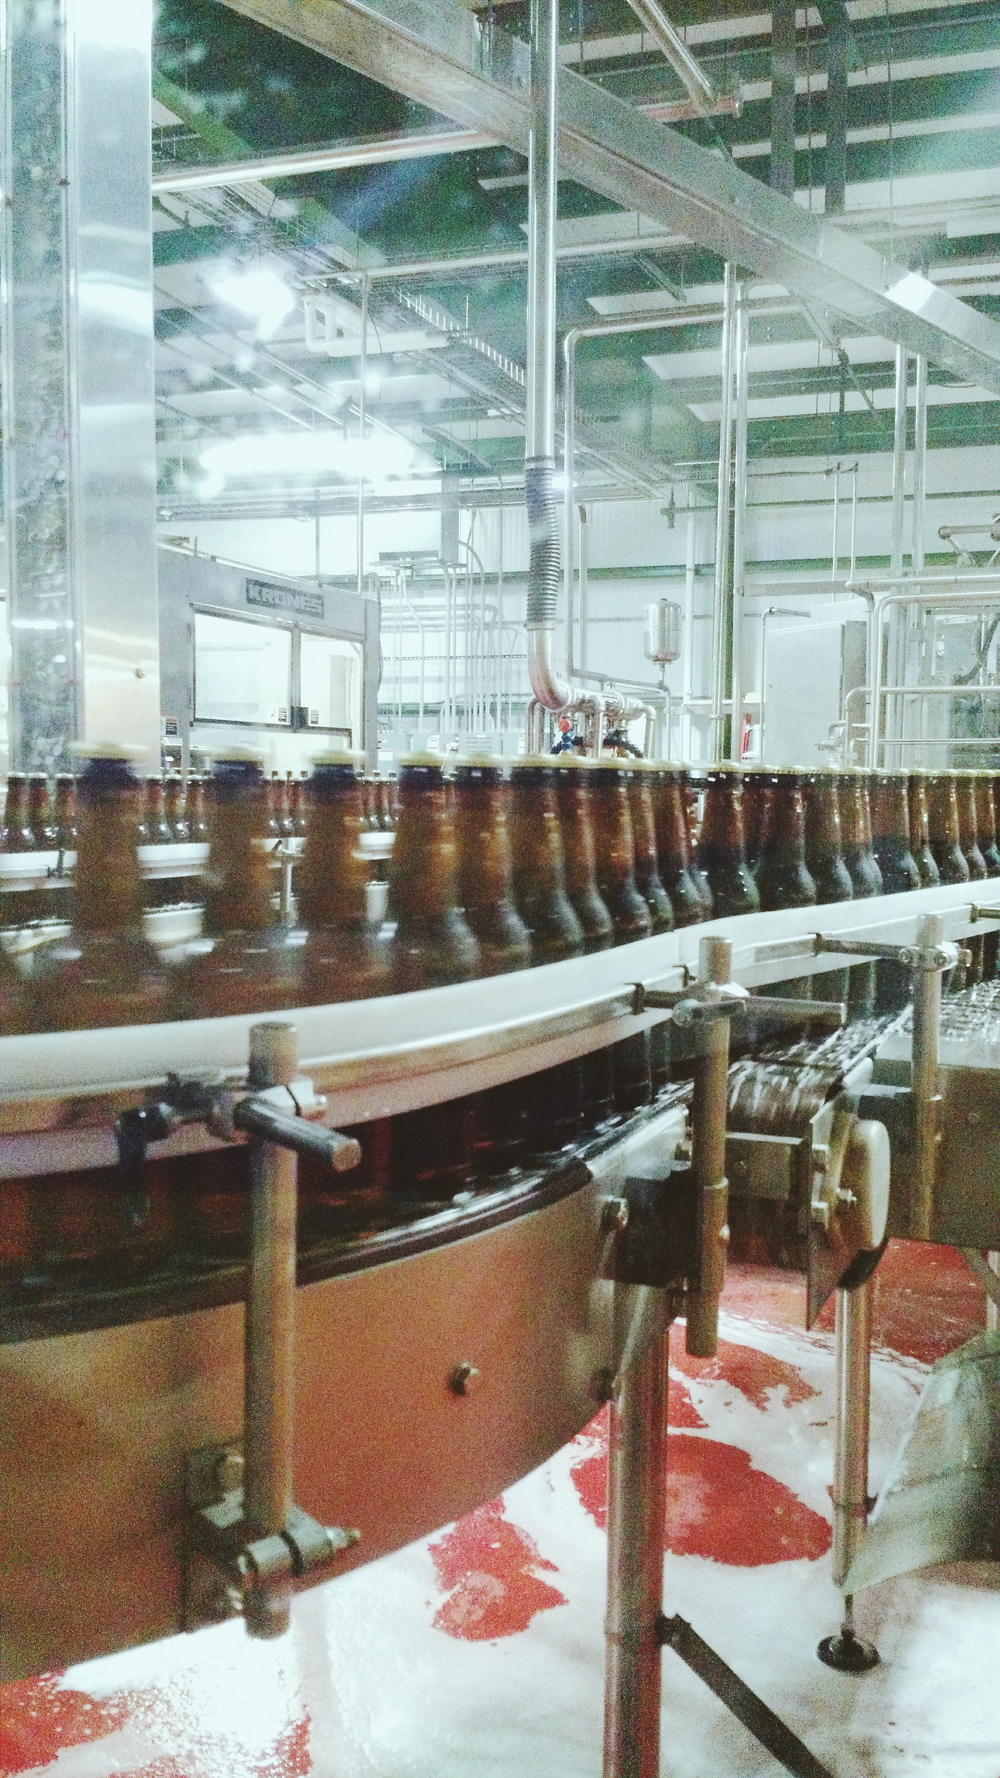 wisconsin's sweet nectar being bottled